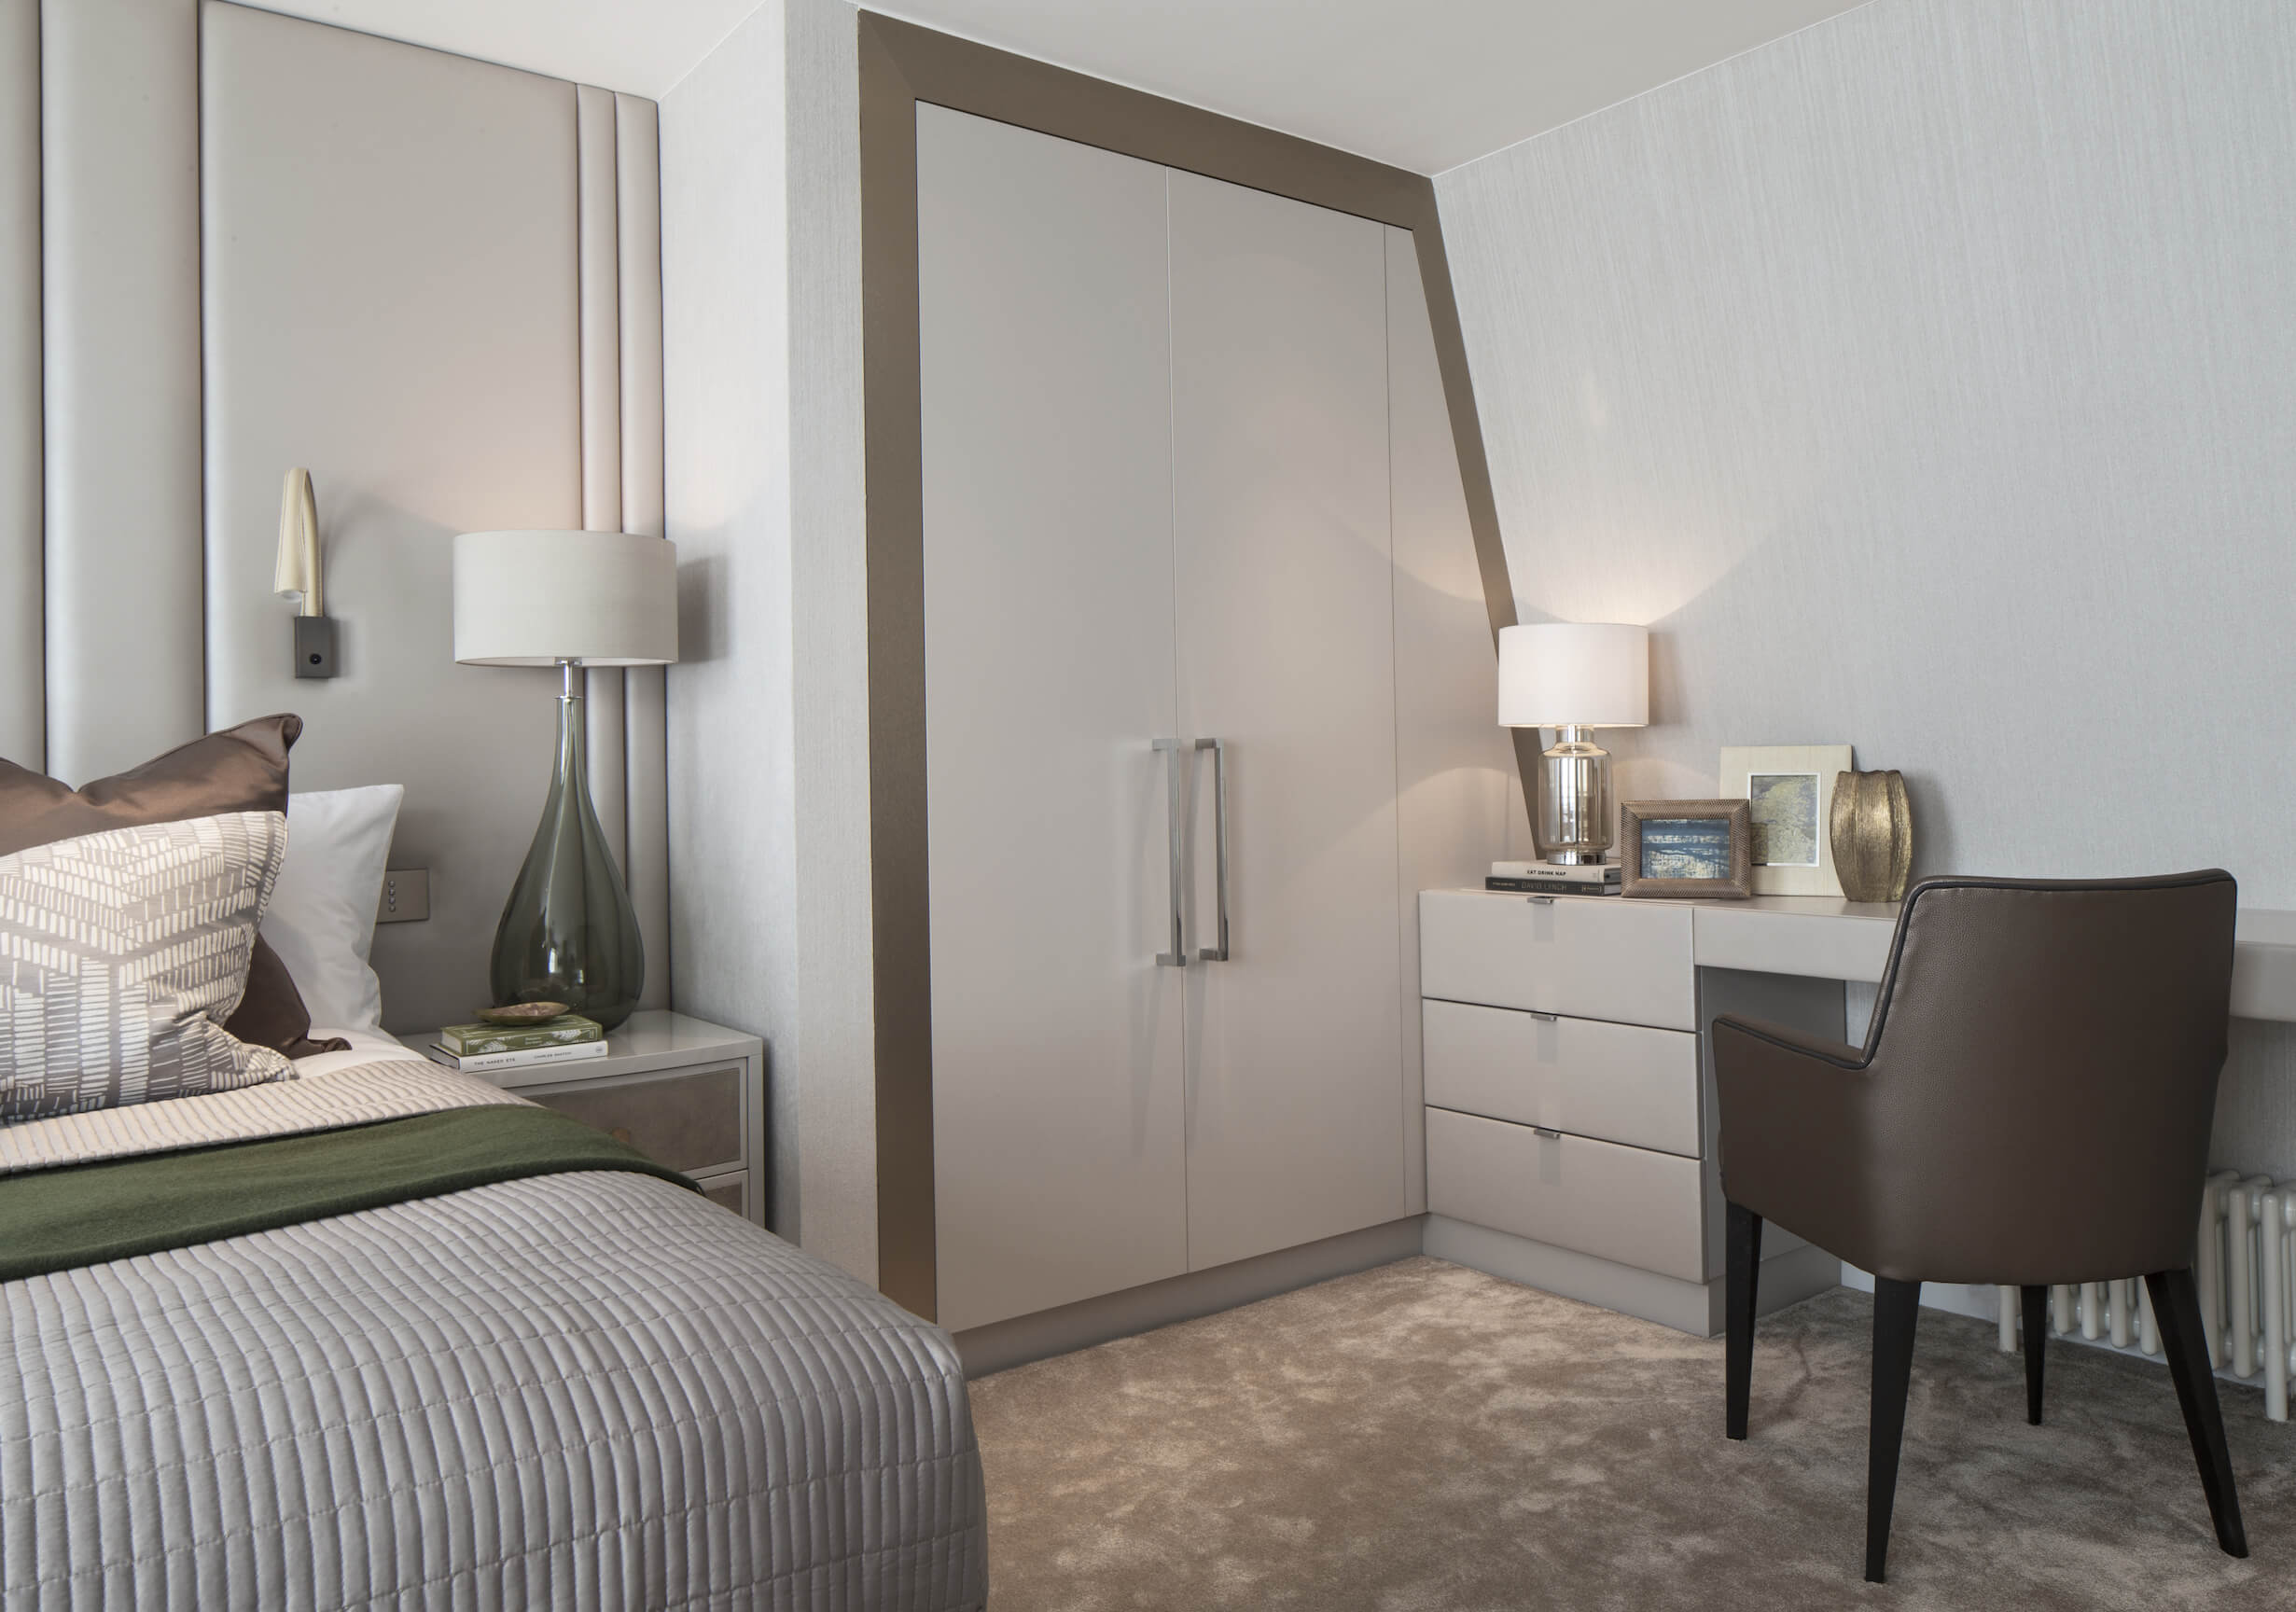 With angled walls leaning toward the ceiling, this space grants a cozy feel to the bedroom. Light toned, minimalist desk design at right contrasts with dark mocha leather chair.